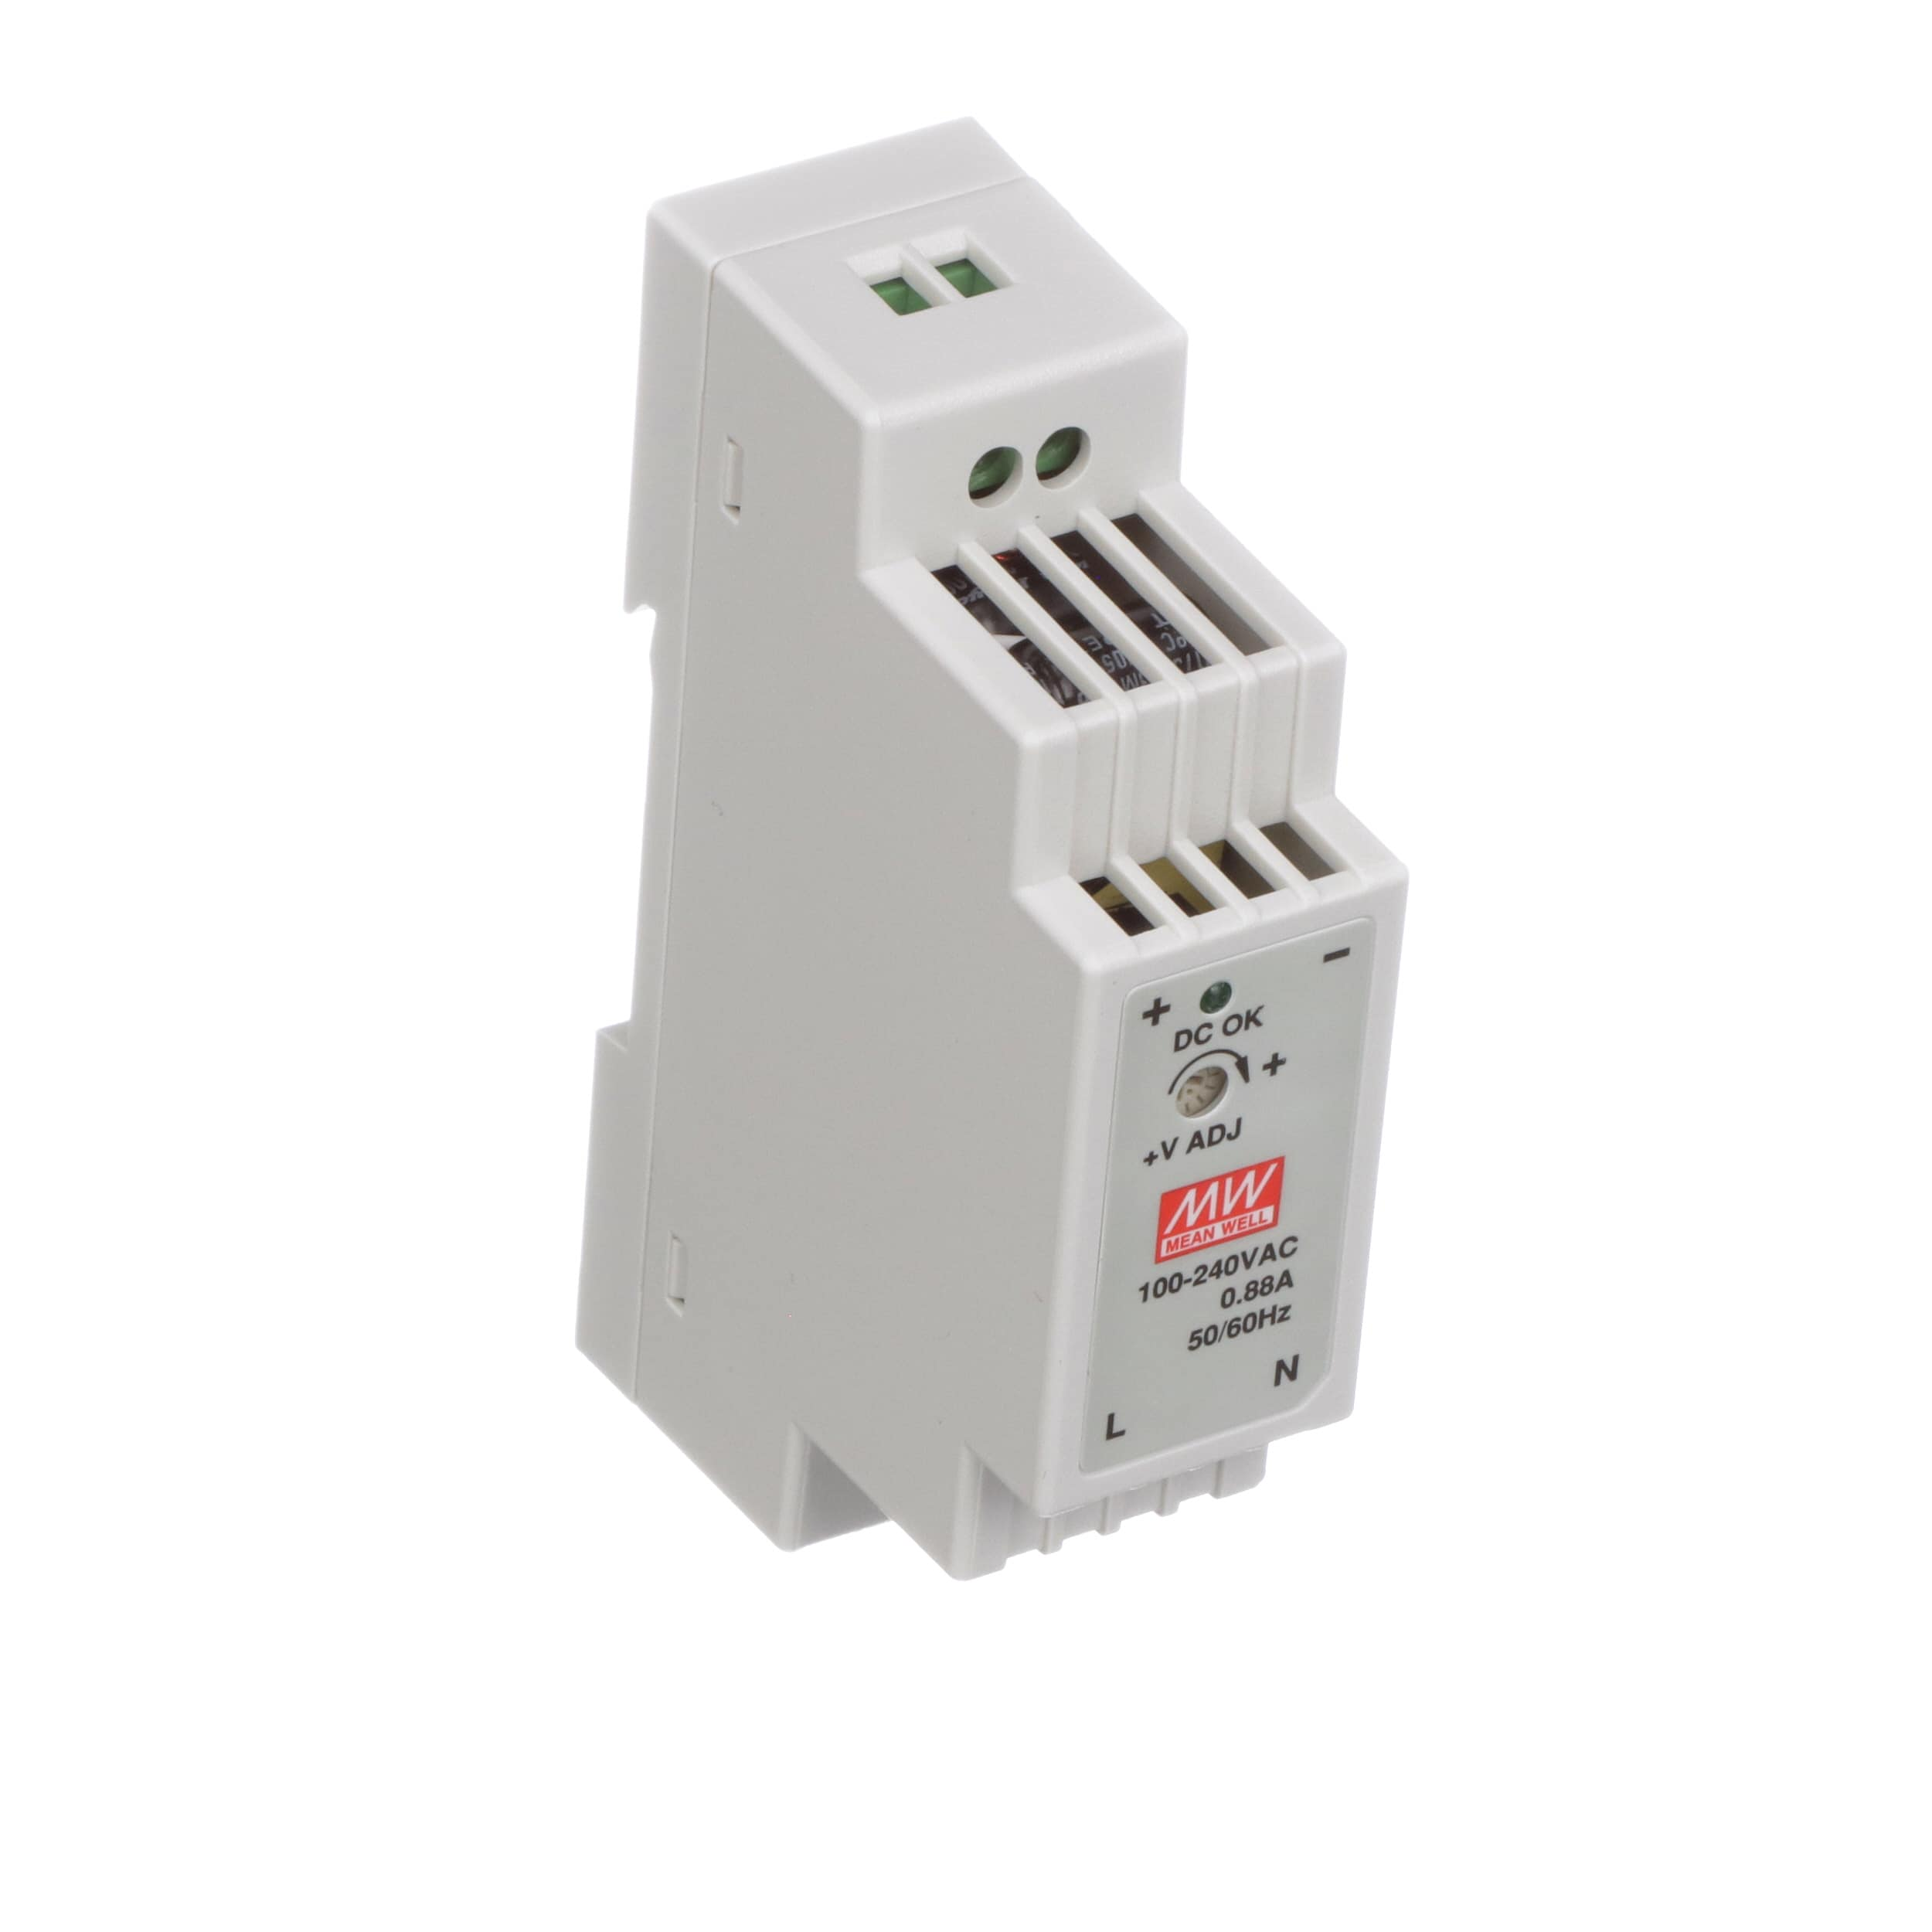 Mean Well Usa Dr 15 24 Power Supply Ac Dc 24v 063a 100 264v Converter Further Circuits Gt 15w Inverter Circuit 12vdc To 120vac In Enclosed Din Rail Mount Series Allied Electronics Automation